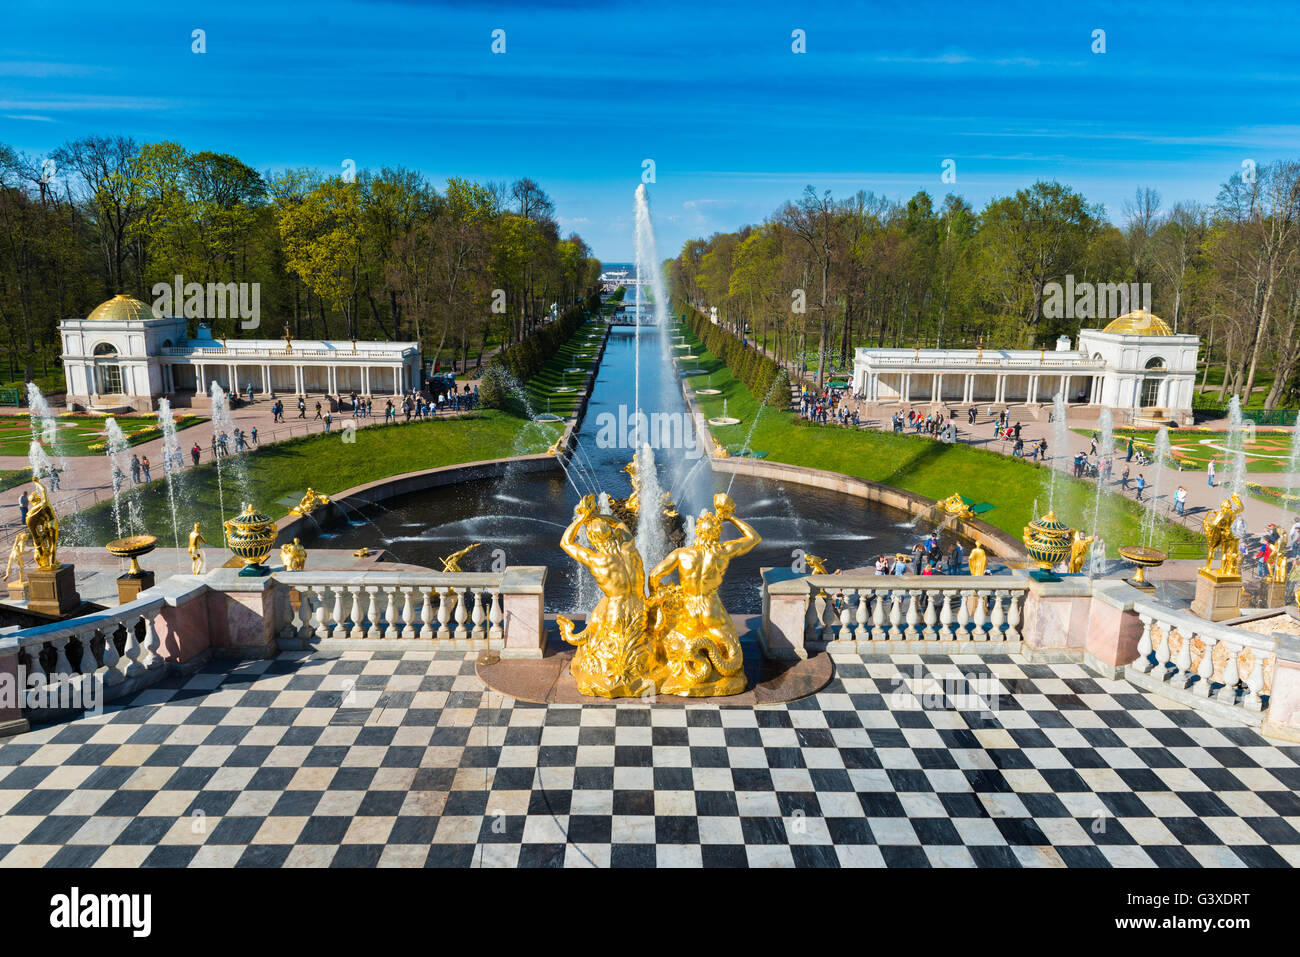 The Grand Cascade And Samson Fountain In Peterhof, Saint Petersburg - Stock Image